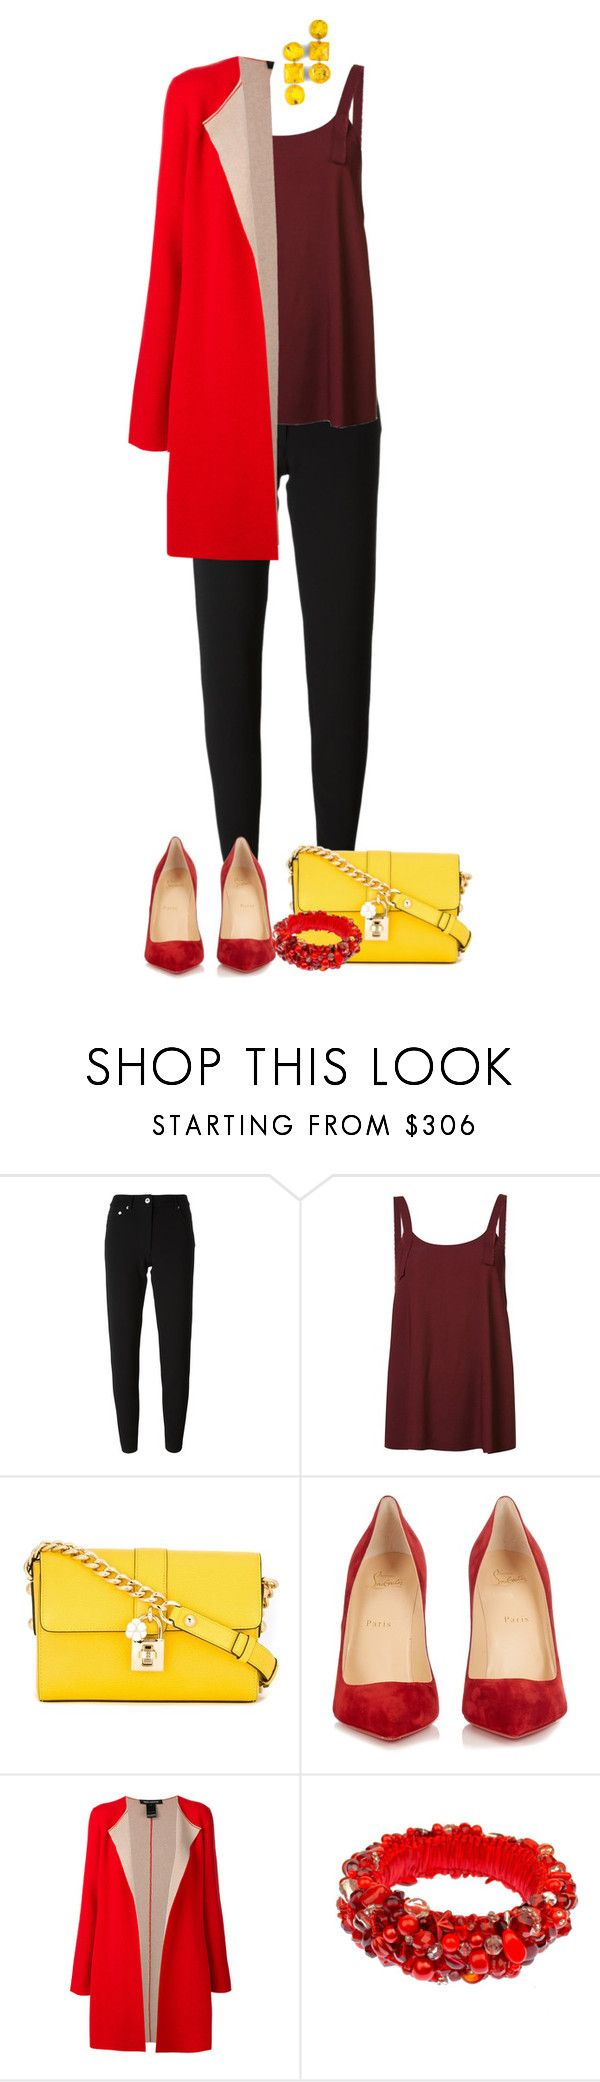 """Untitled #152"" by aria-kam ❤ liked on Polyvore featuring Moschino, Helmut Lang, Dolce&Gabbana, Christian Louboutin and IRIS VON ARNIM"